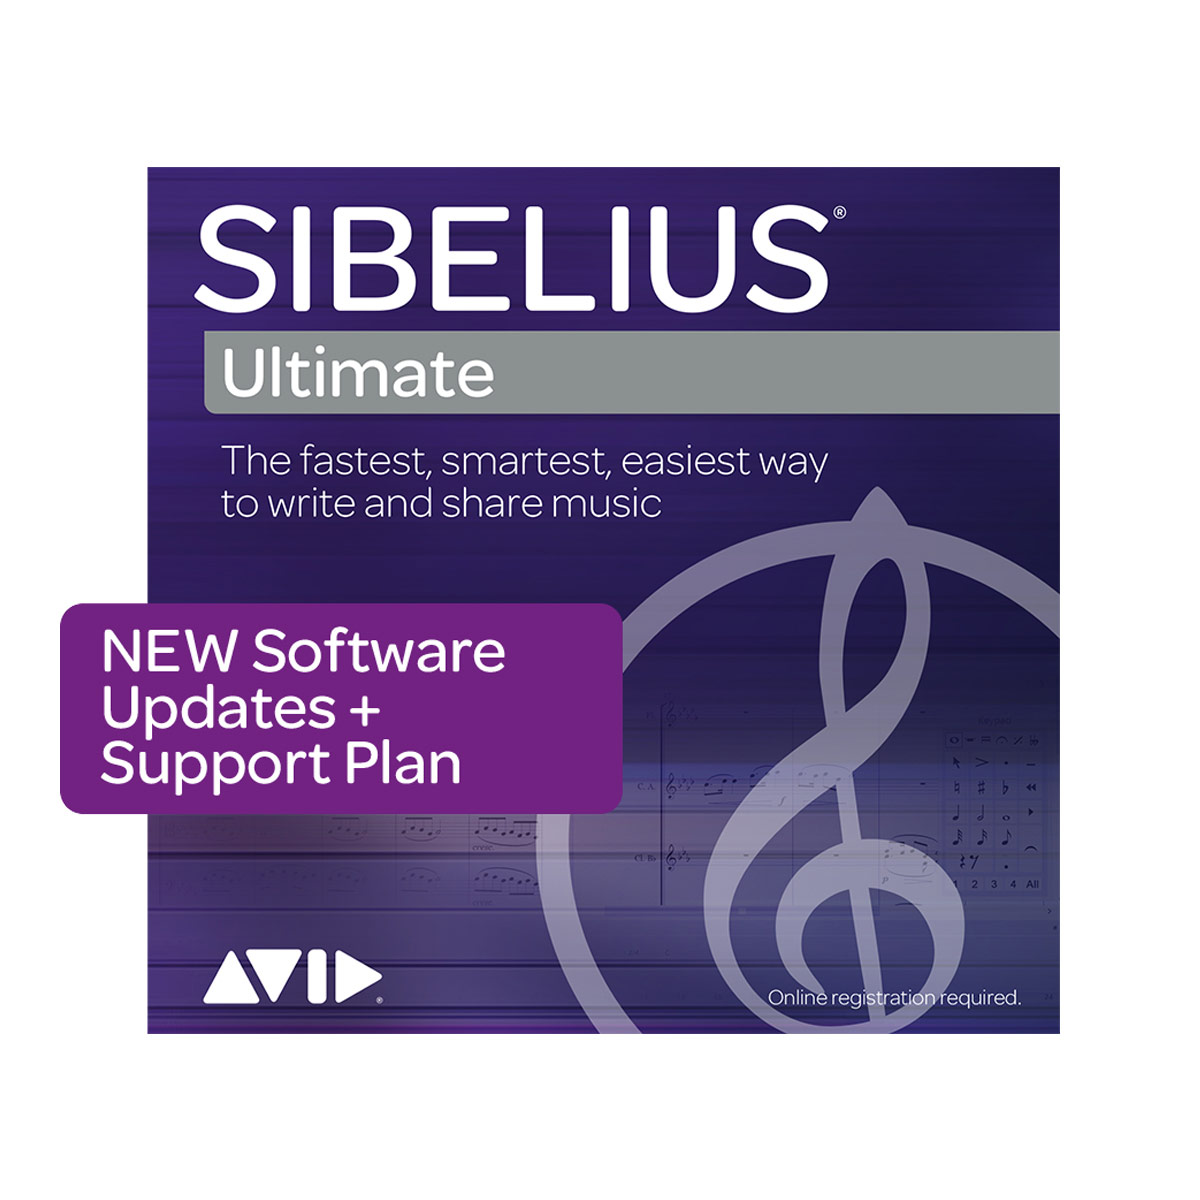 Sibelius Ultimate 3 Year Software Upates and Support Plan - NEW Plan